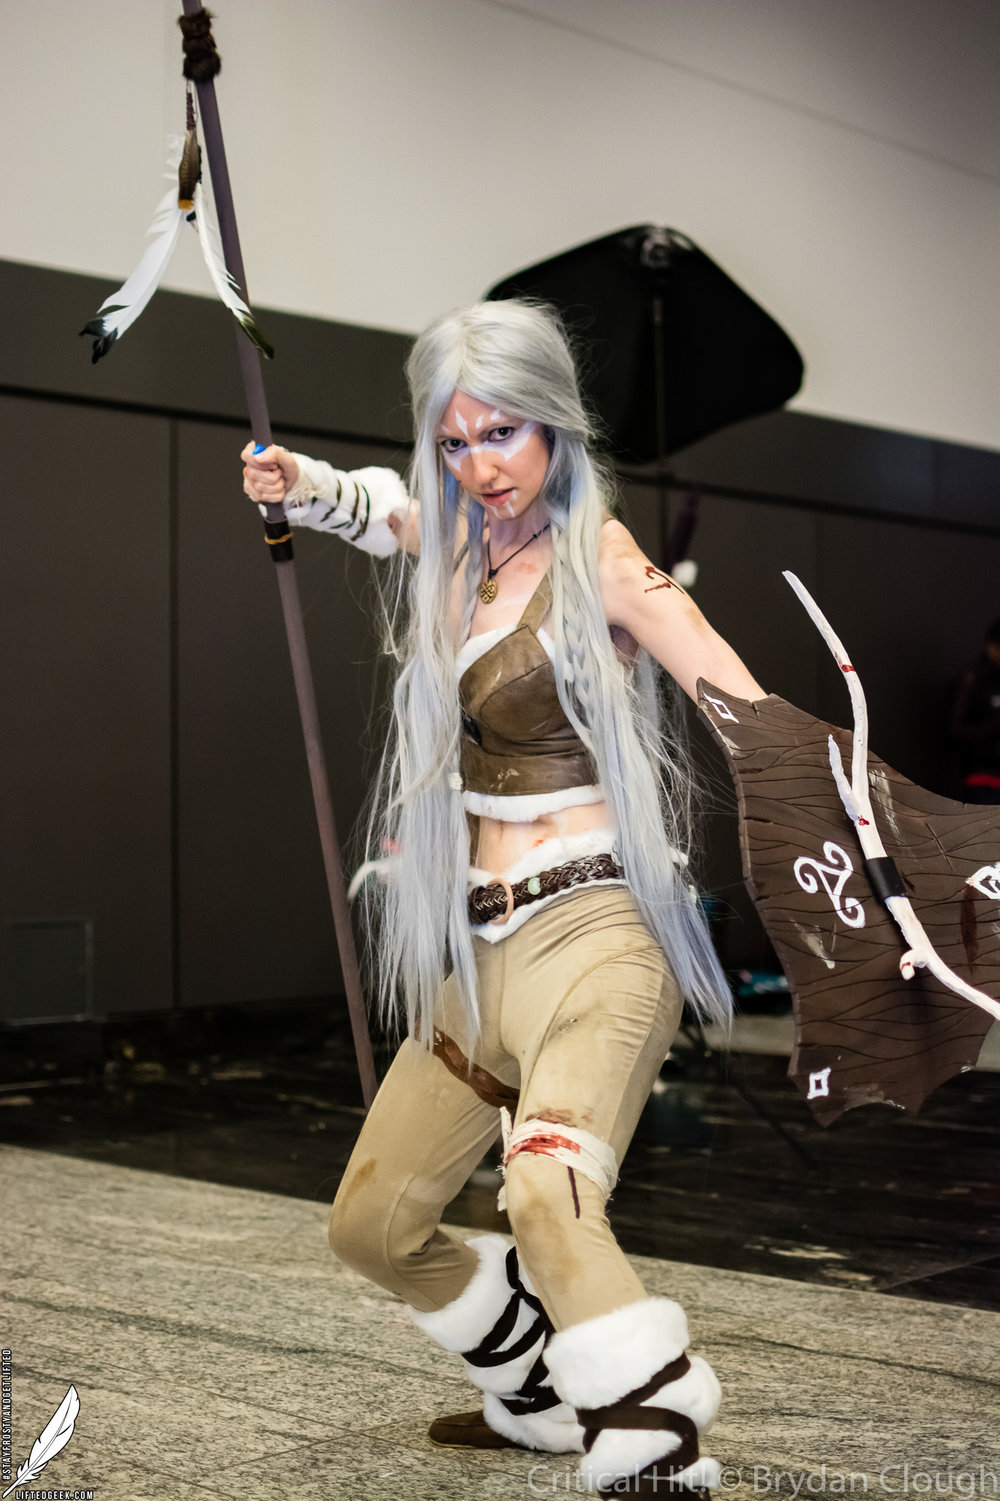 halloween expo cosplay contest 2016-113.jpg